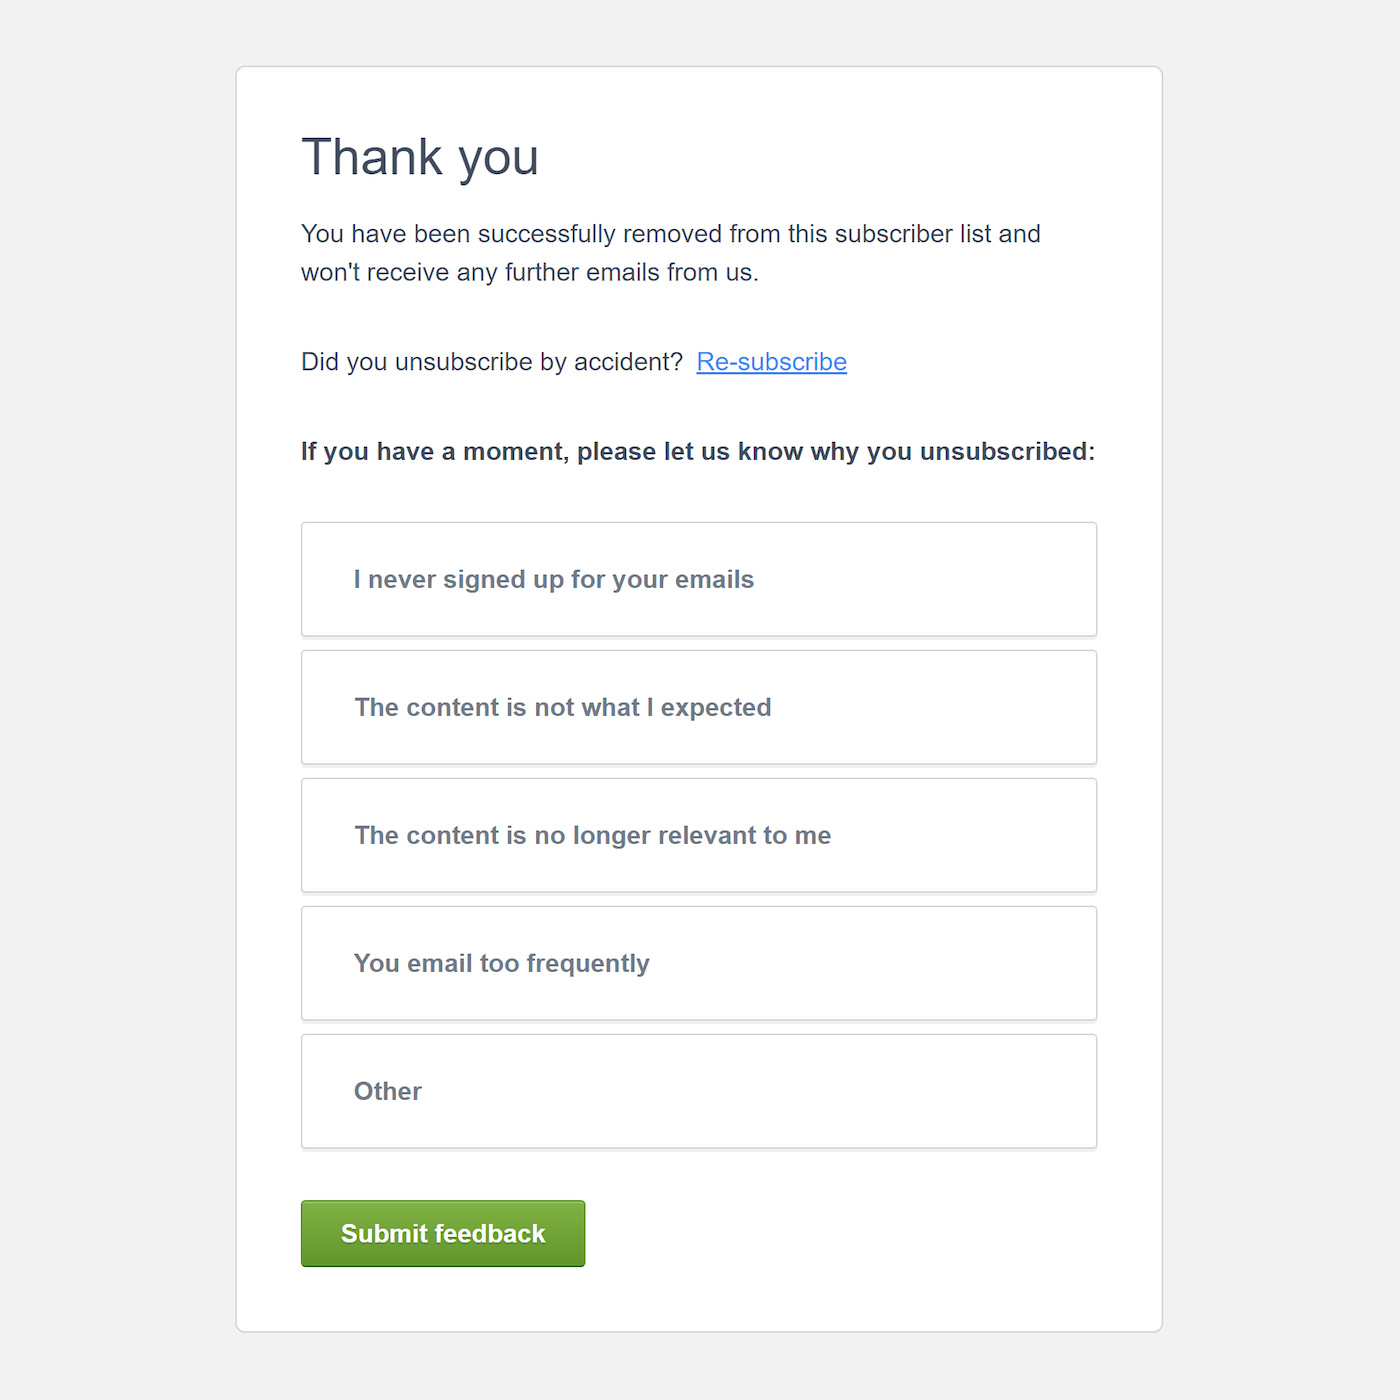 Screenshot of an unsubscribe survey powered by Campaign Monitor